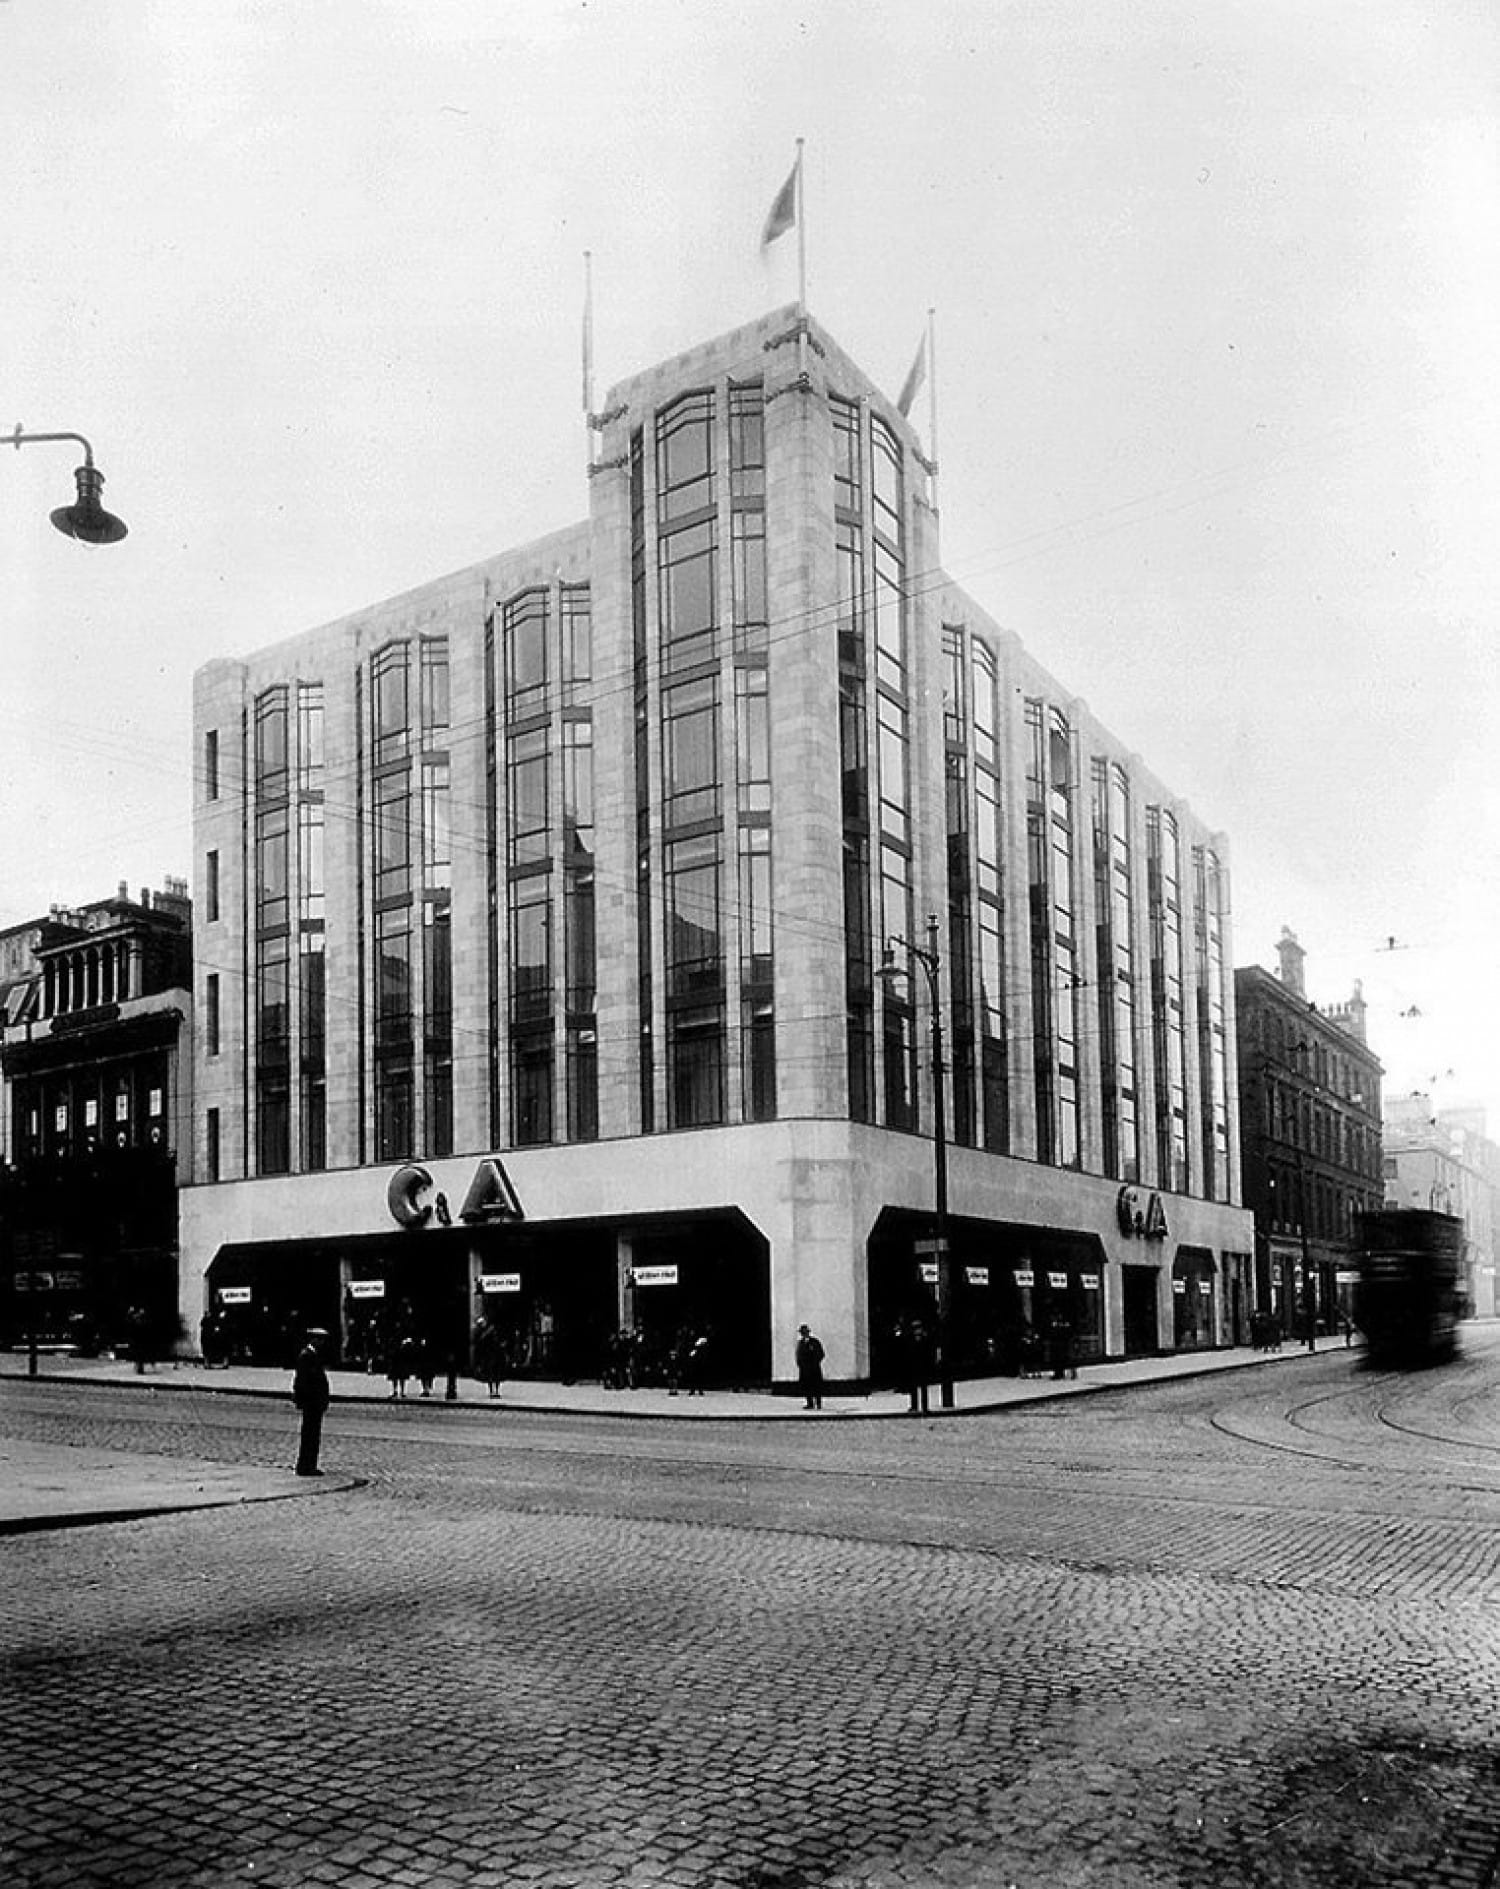 The C&A store in the early 1930s (Herald and Times Group)